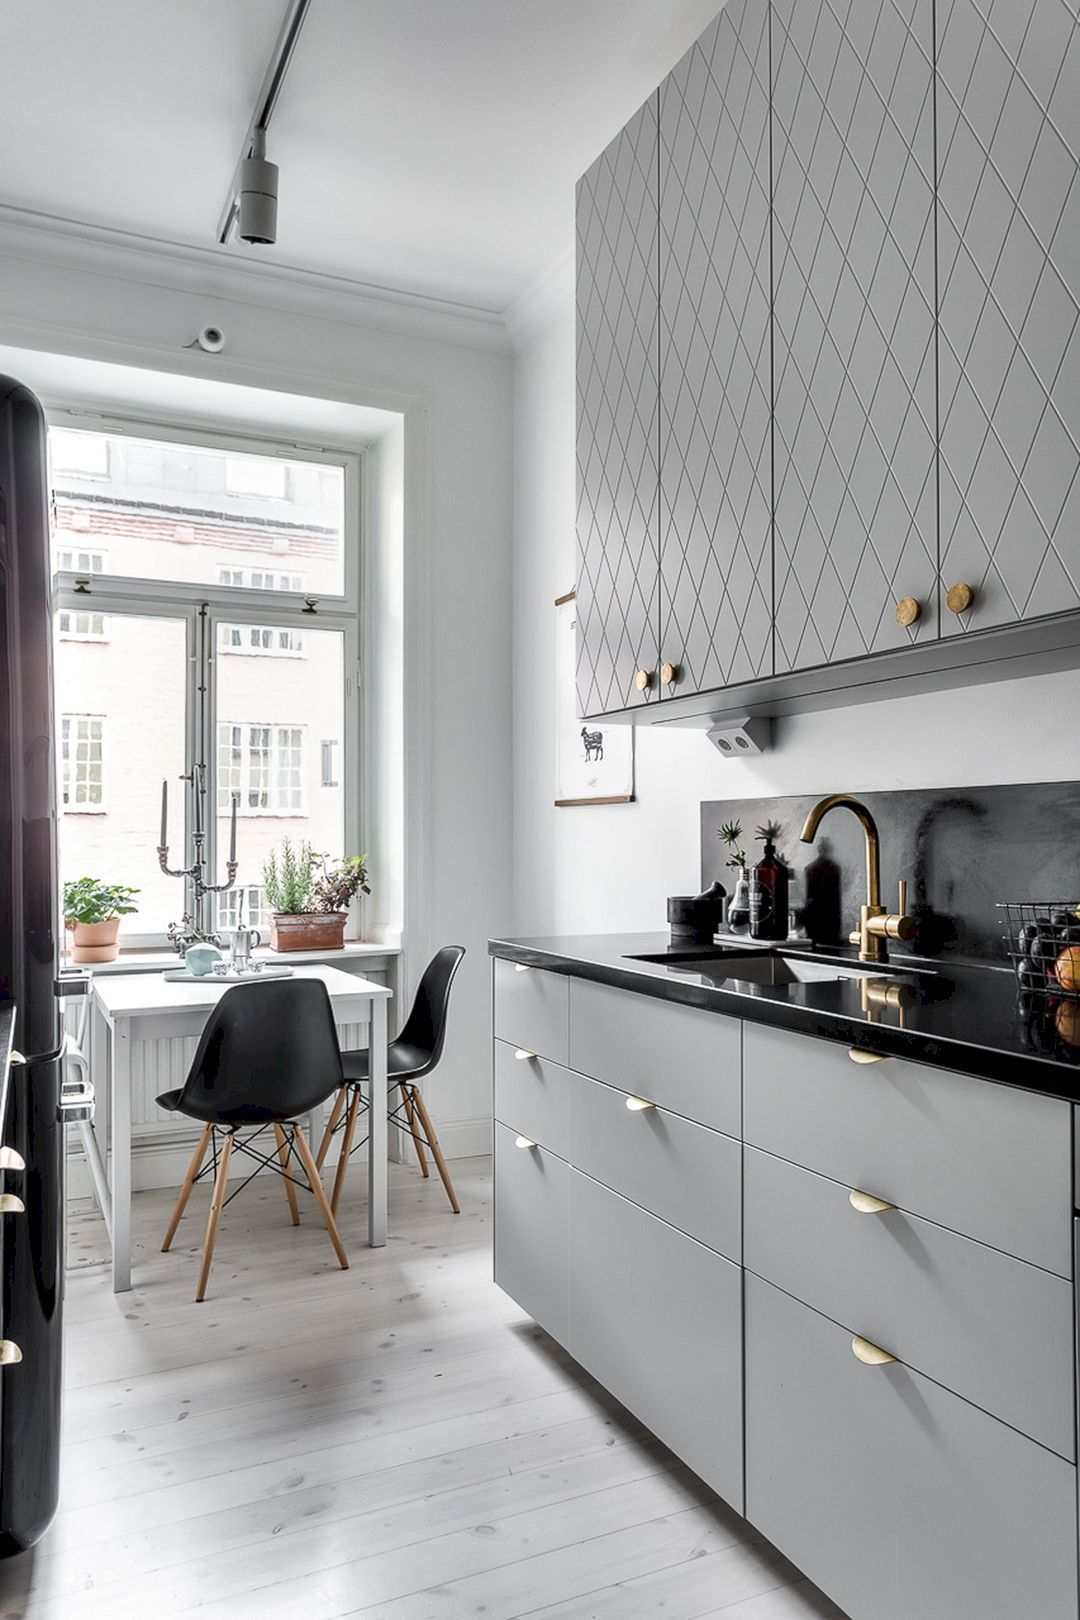 91 Brilliant Small Kitchen Remodel Ideas https://www ... on black kitchen cabinets ideas, black and white traditional kitchens, high gloss black kitchen ideas, black backsplash ideas, black and white kitchens with yellow accents, black and white galley kitchens, black and white tattoo ideas, black kitchen sink ideas, black and white nail ideas, black and white kitchens hgtv, black and white stuff, black kitchen design, black luxury kitchen, black and white painting ideas, black and white wedding reception ideas, black kitchen island, before and after kitchen ideas, black and off white kitchens, black and white printable periodic table, black white red kitchen,